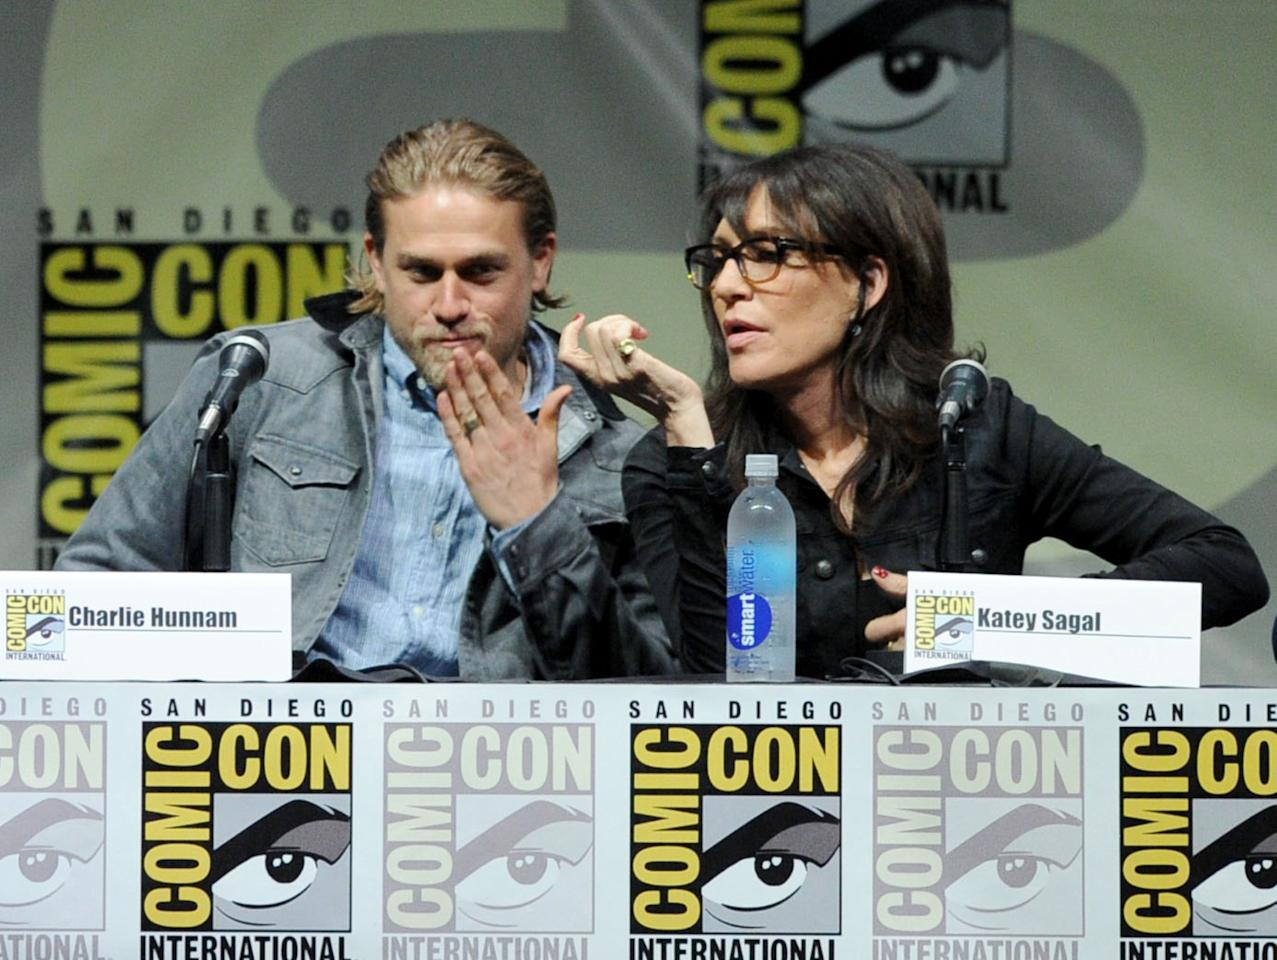 "SAN DIEGO, CA - JULY 21: Actors Charlie Hunnam (L) and Katey Sagal speak onstage at the ""Sons Of Anarchy"" panel during Comic-Con International 2013 at San Diego Convention Center on July 21, 2013 in San Diego, California. (Photo by Kevin Winter/Getty Images)"